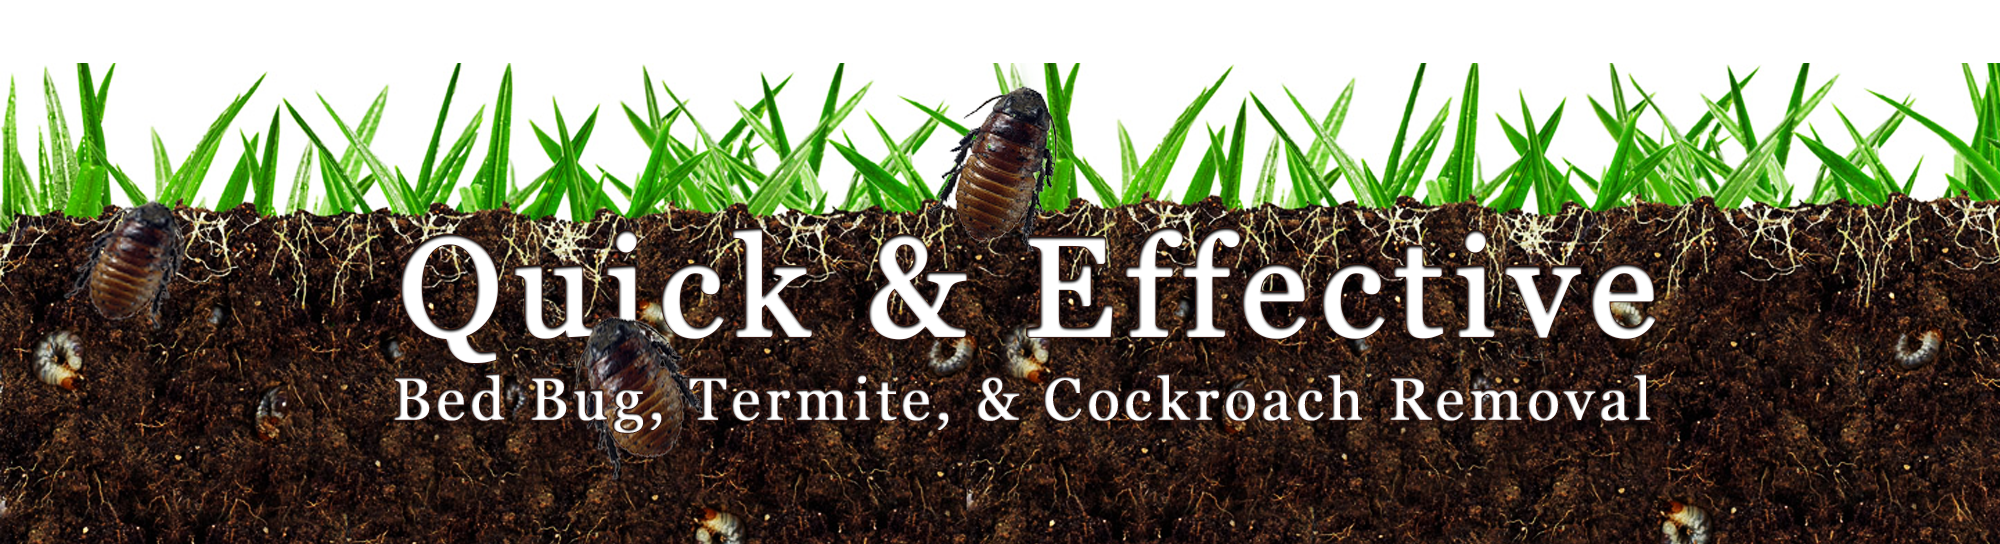 Quick & Effective Pest Control - York, PA